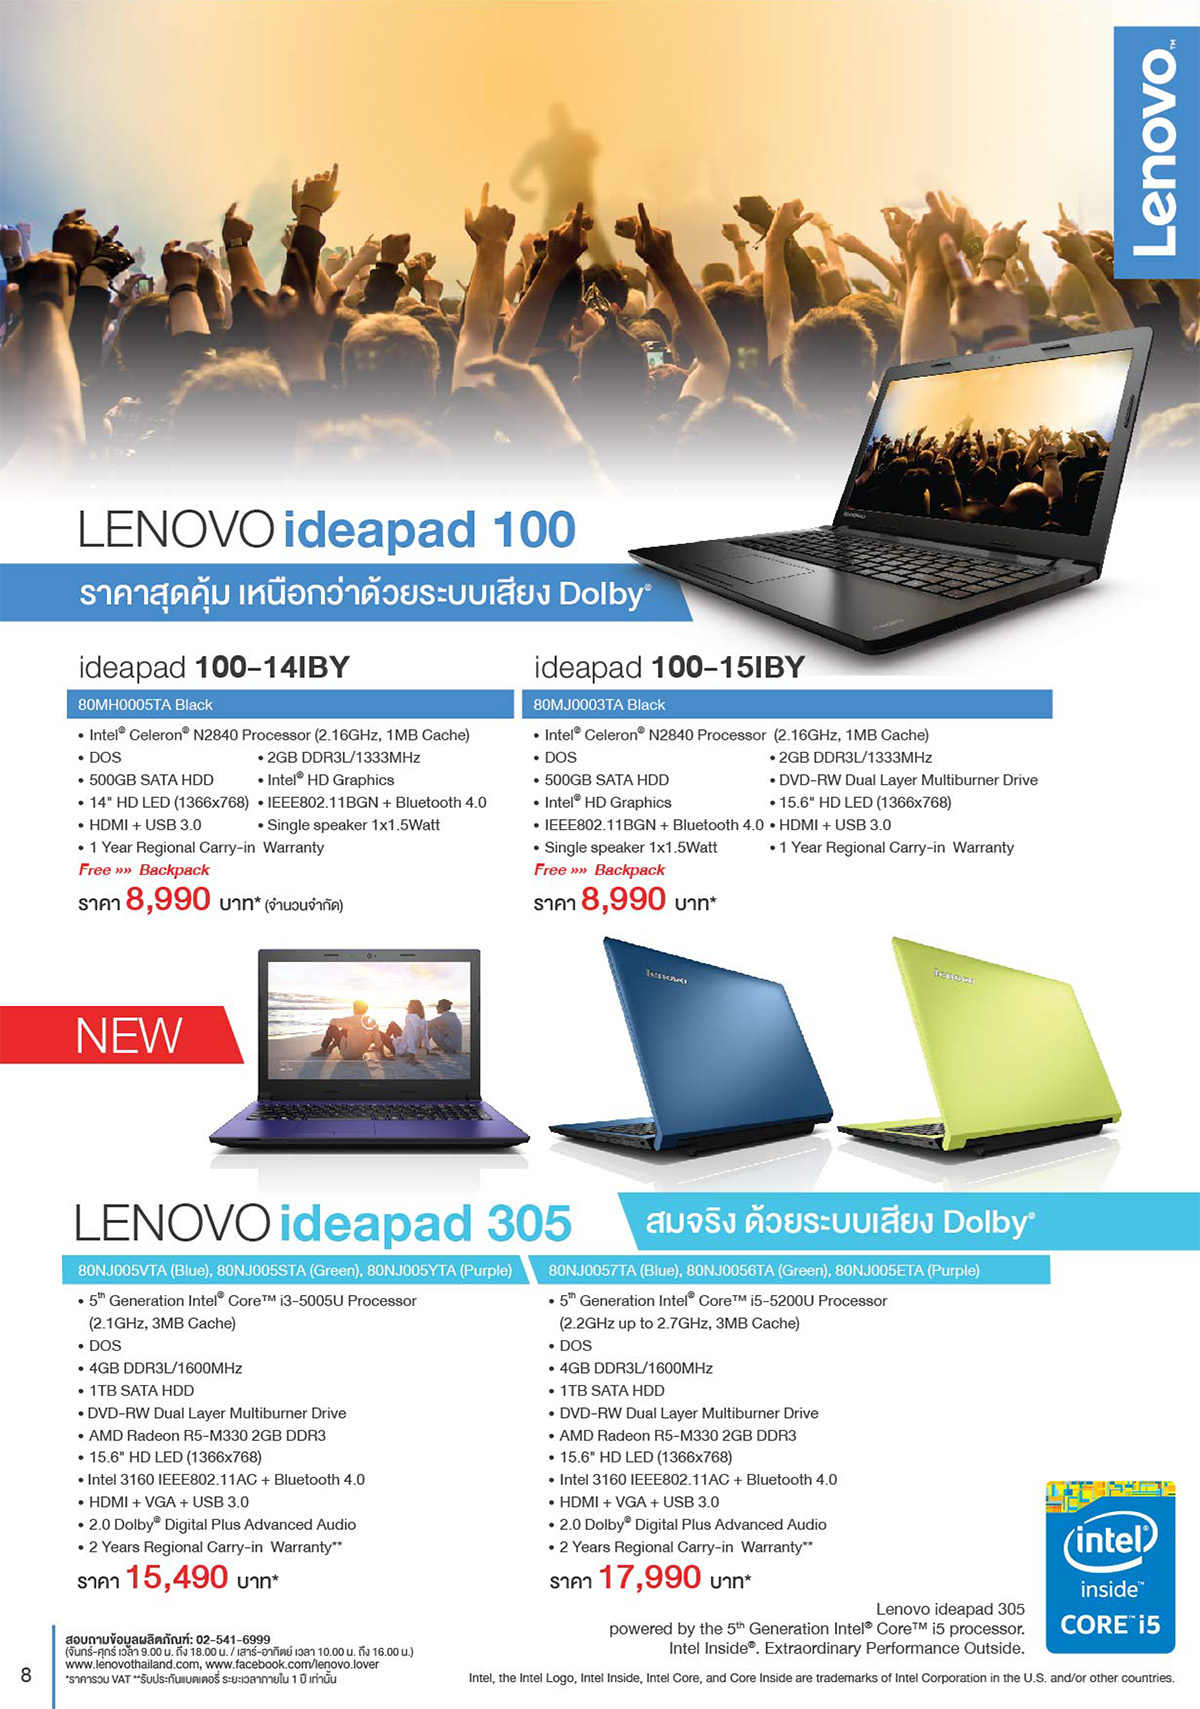 Lenovo Consumer Product Catalog Q2FY15_Final AW-8